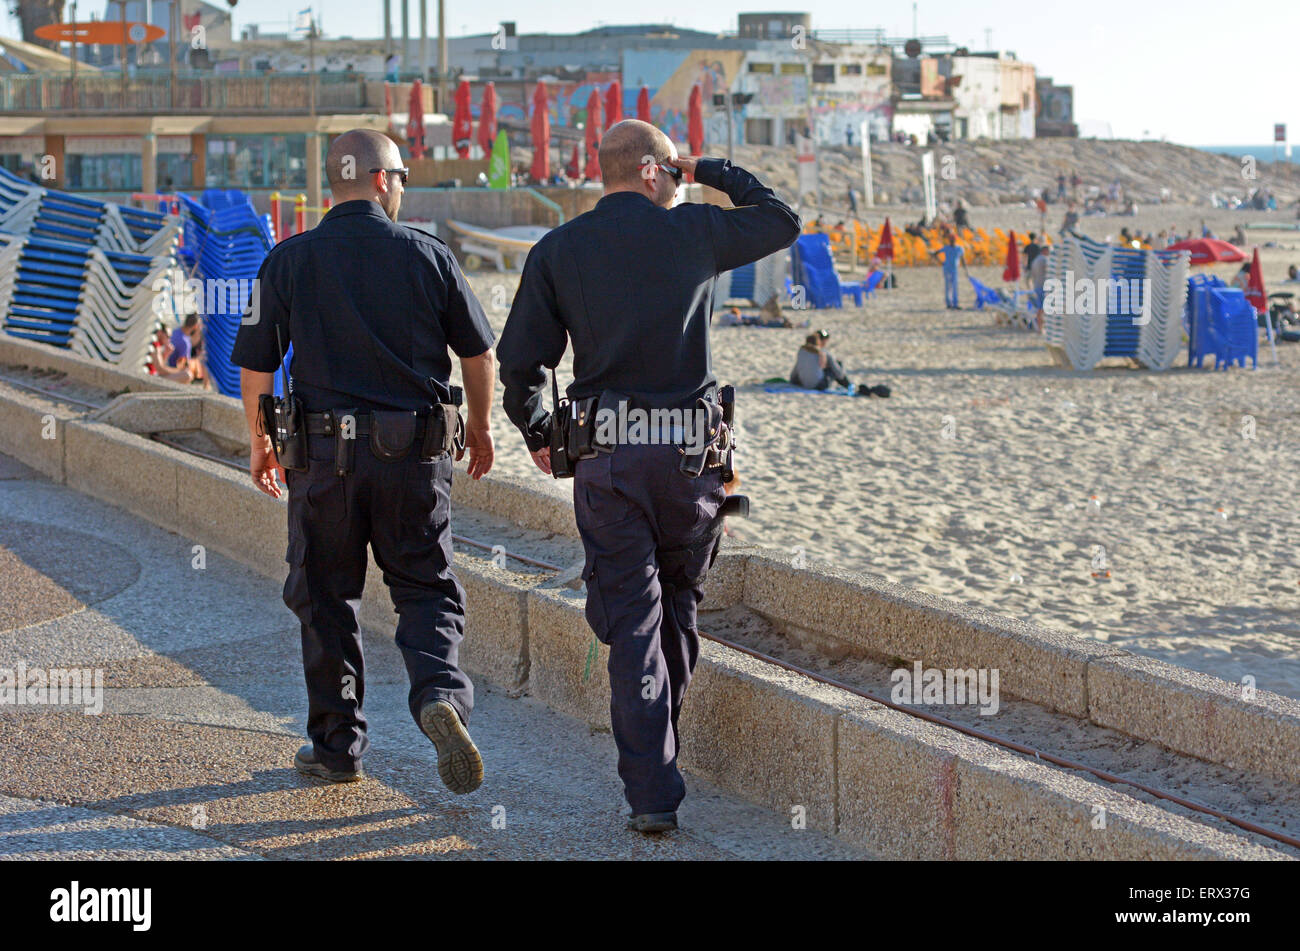 TEL AVIV, ISR - APR 07 2015:Two Israel Police officers patrolling on Tel Aviv waterfront.The Israel Police are a - Stock Image